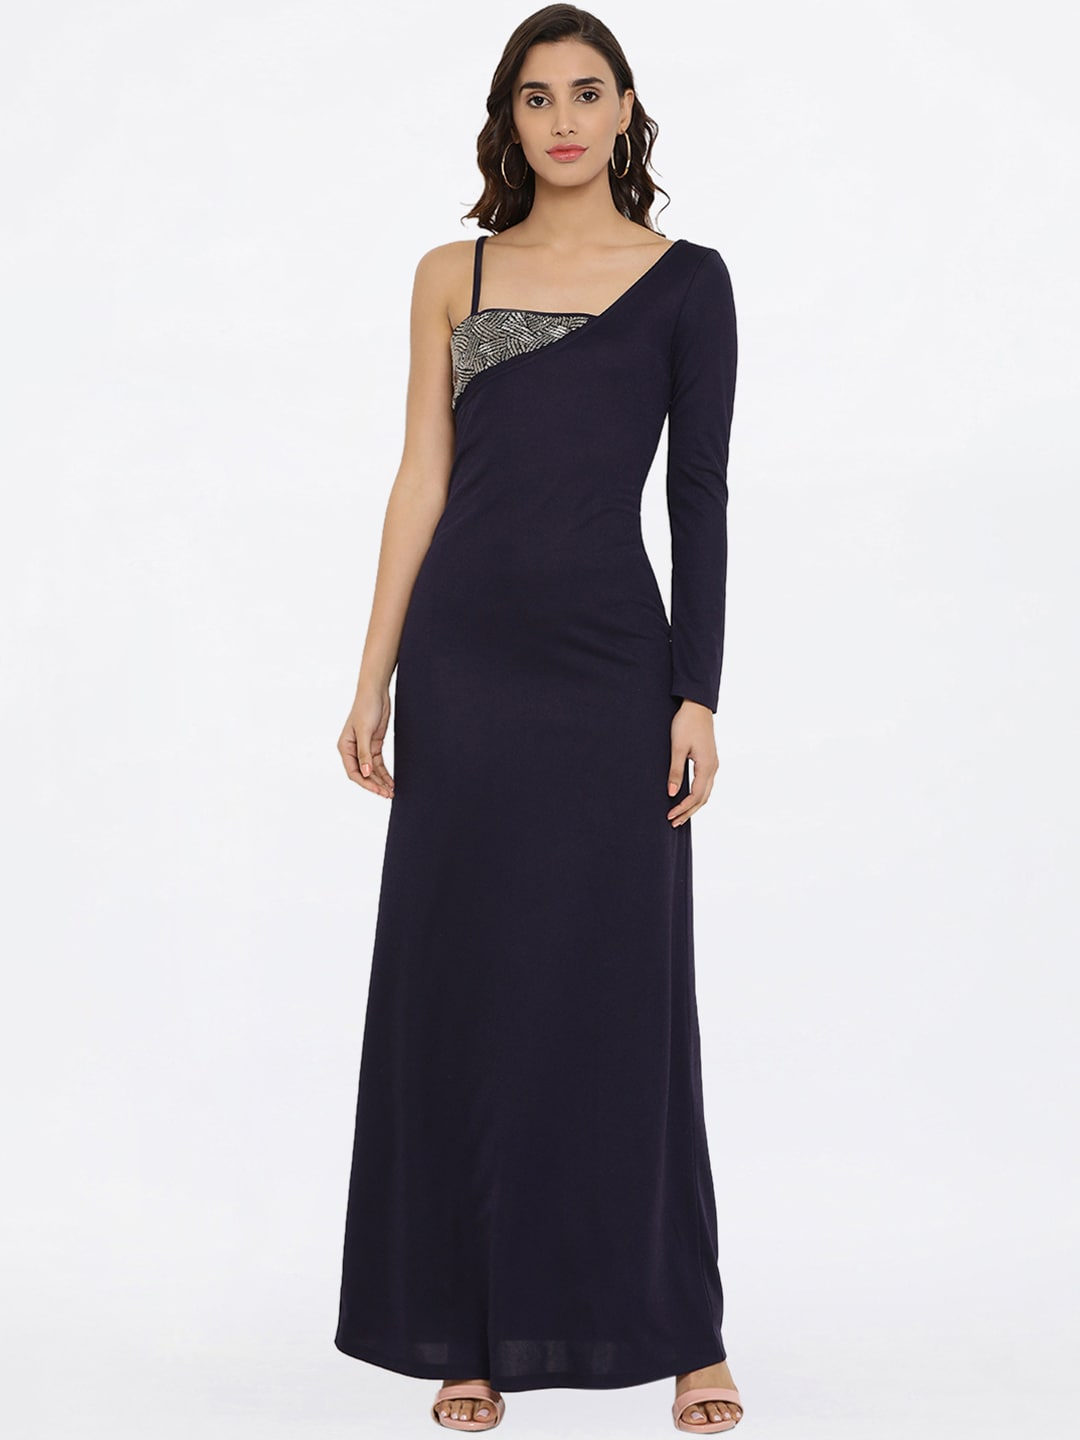 7a0947edc95 Gowns - Shop for Gown Online at Best Price